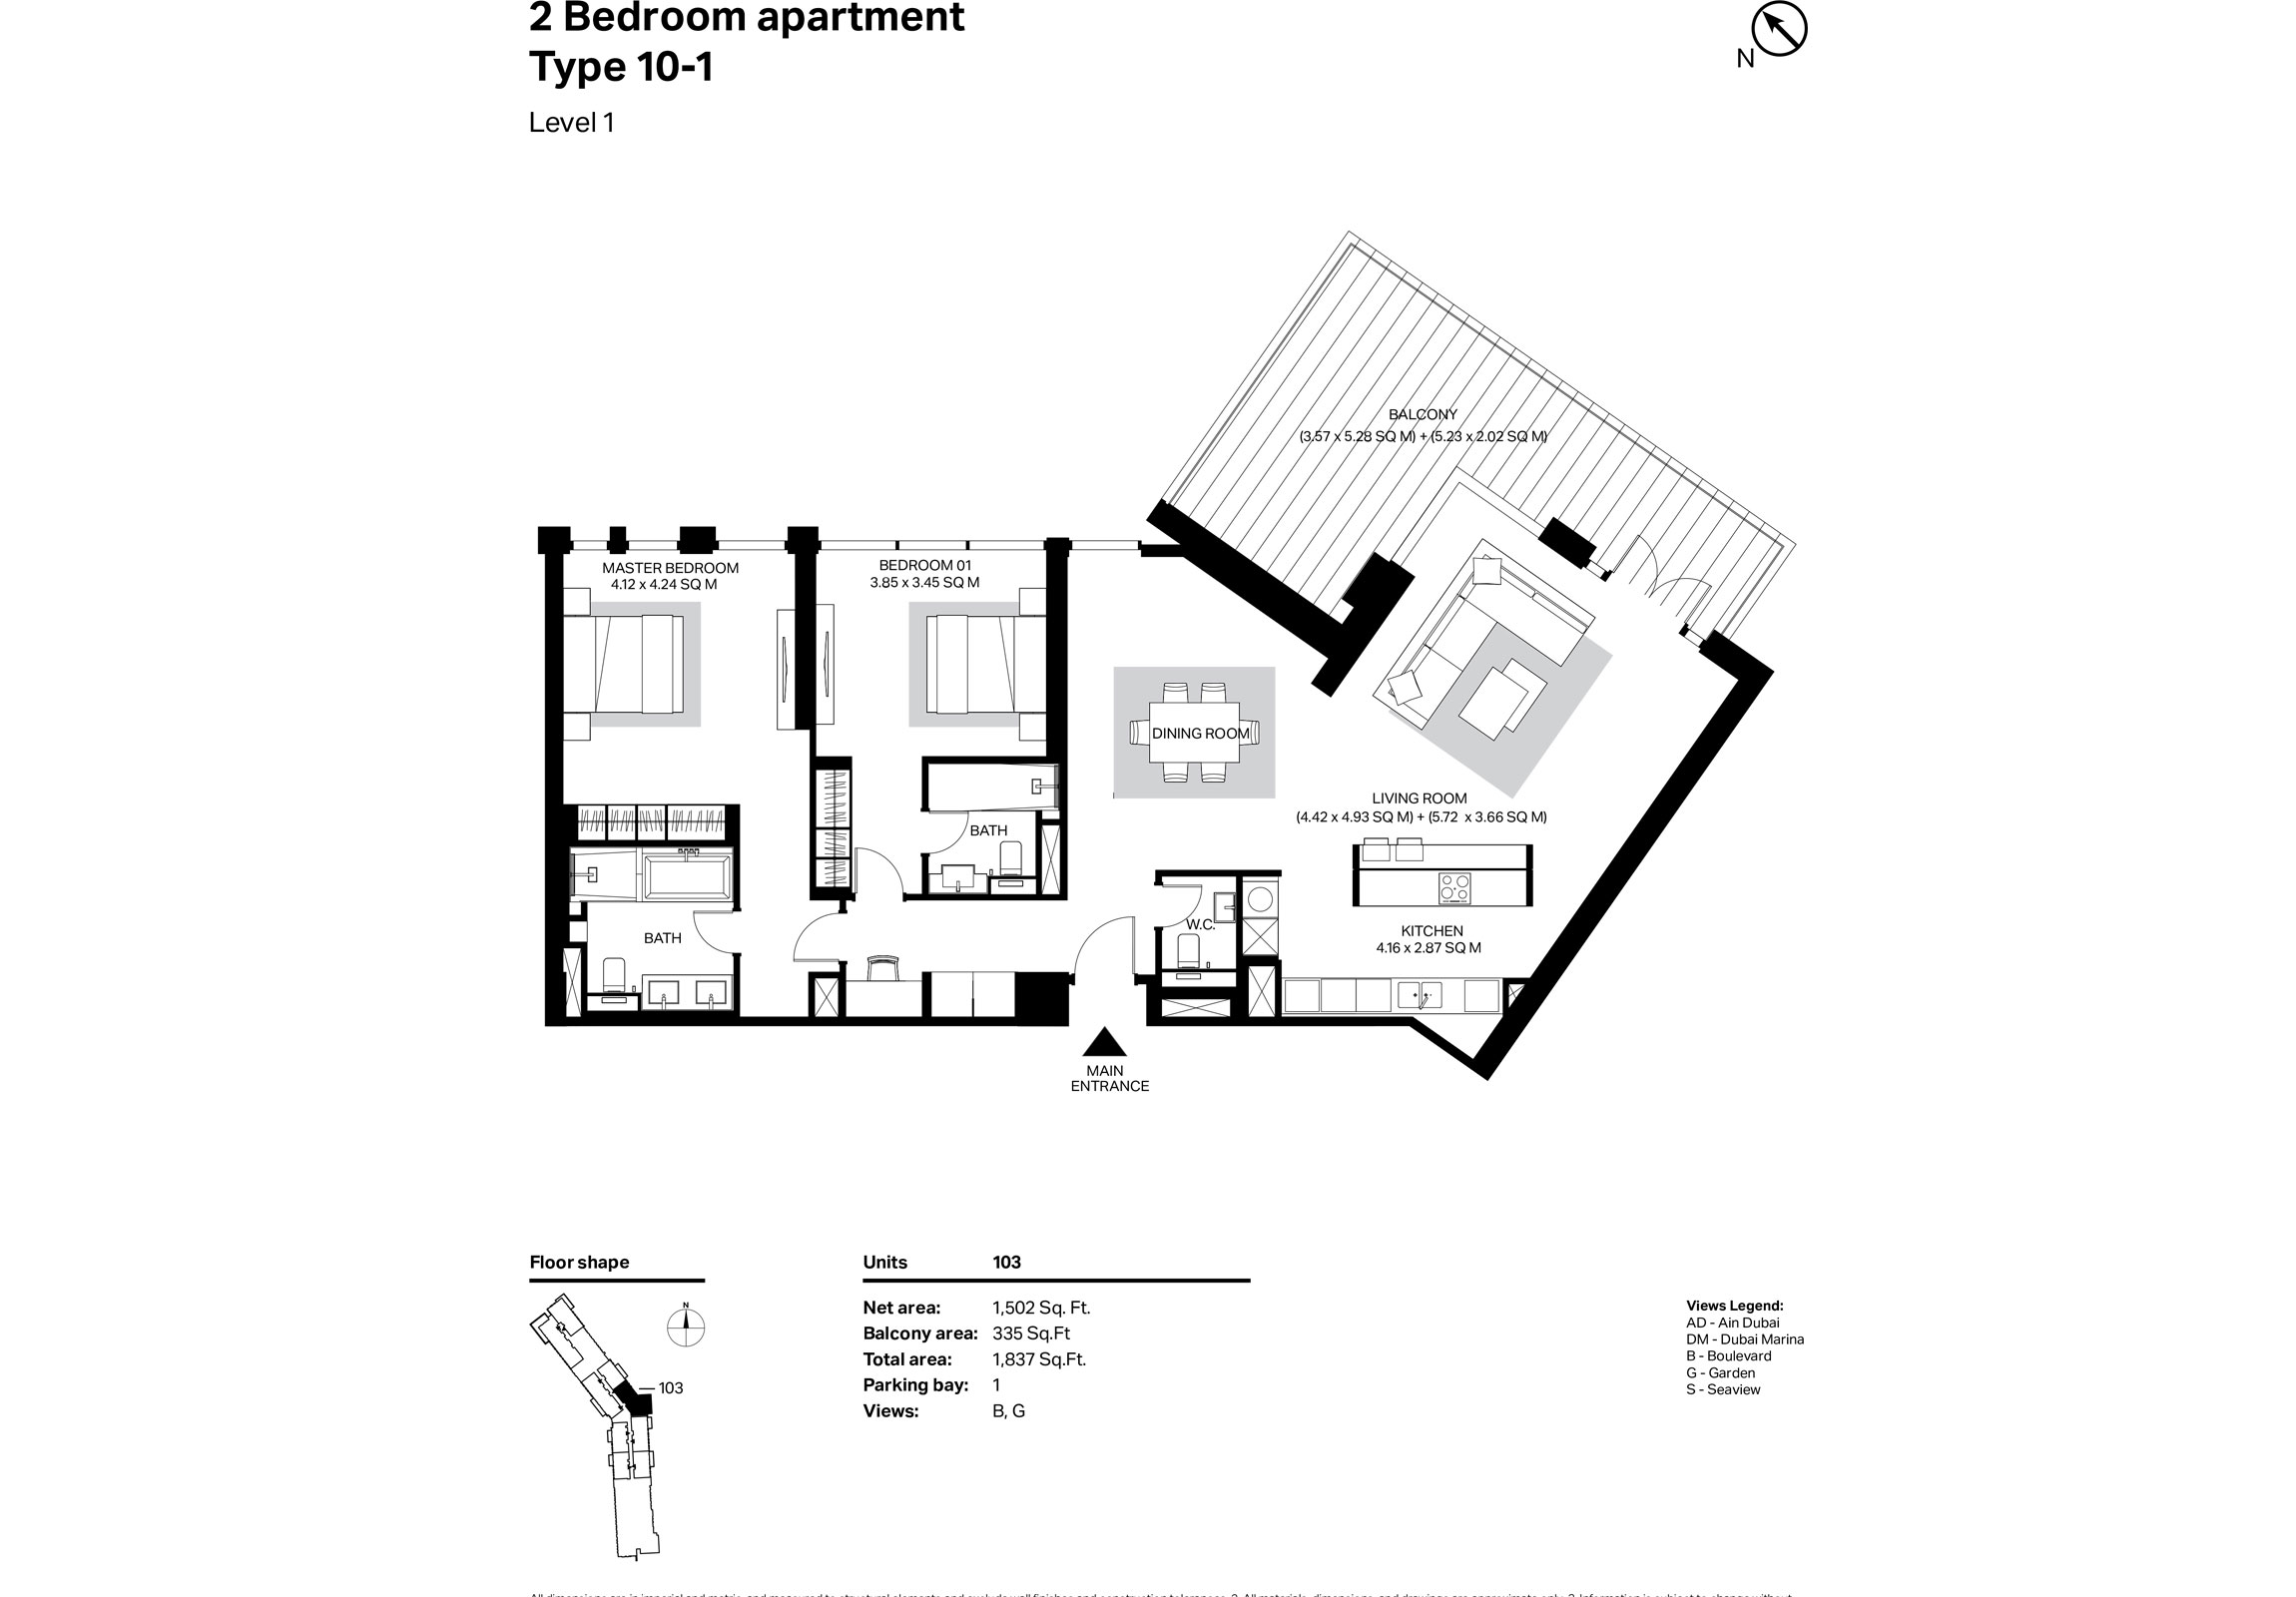 Building 2 - 2 Bedroom Type 10-1 Level 1 Size 1837    sq. ft.